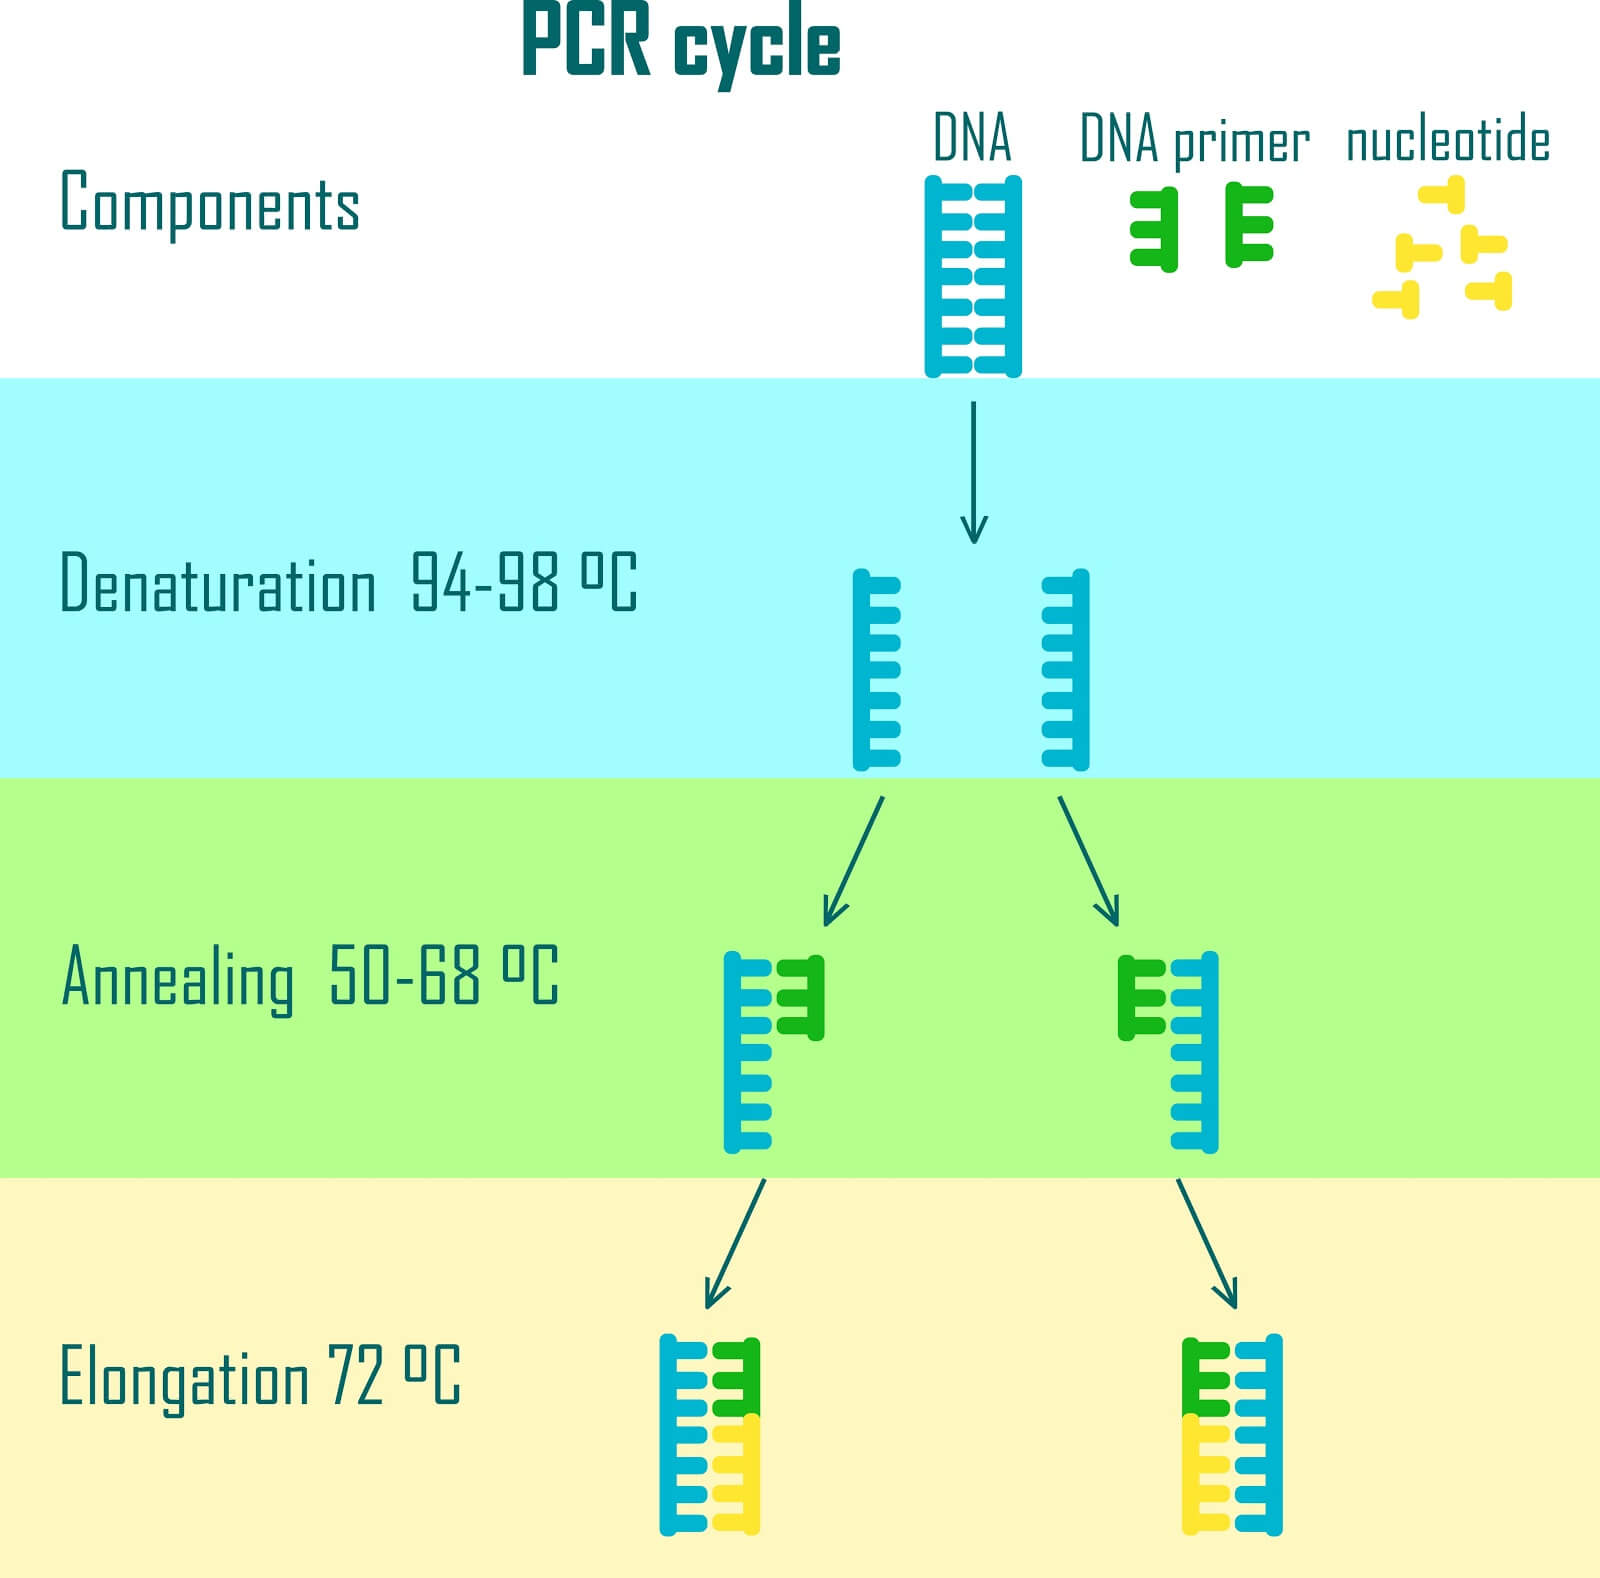 The polymerase chain reaction an is incredibly simple way of amplifying DNA. It is now being used to generate RAM-like data storage in DNA.